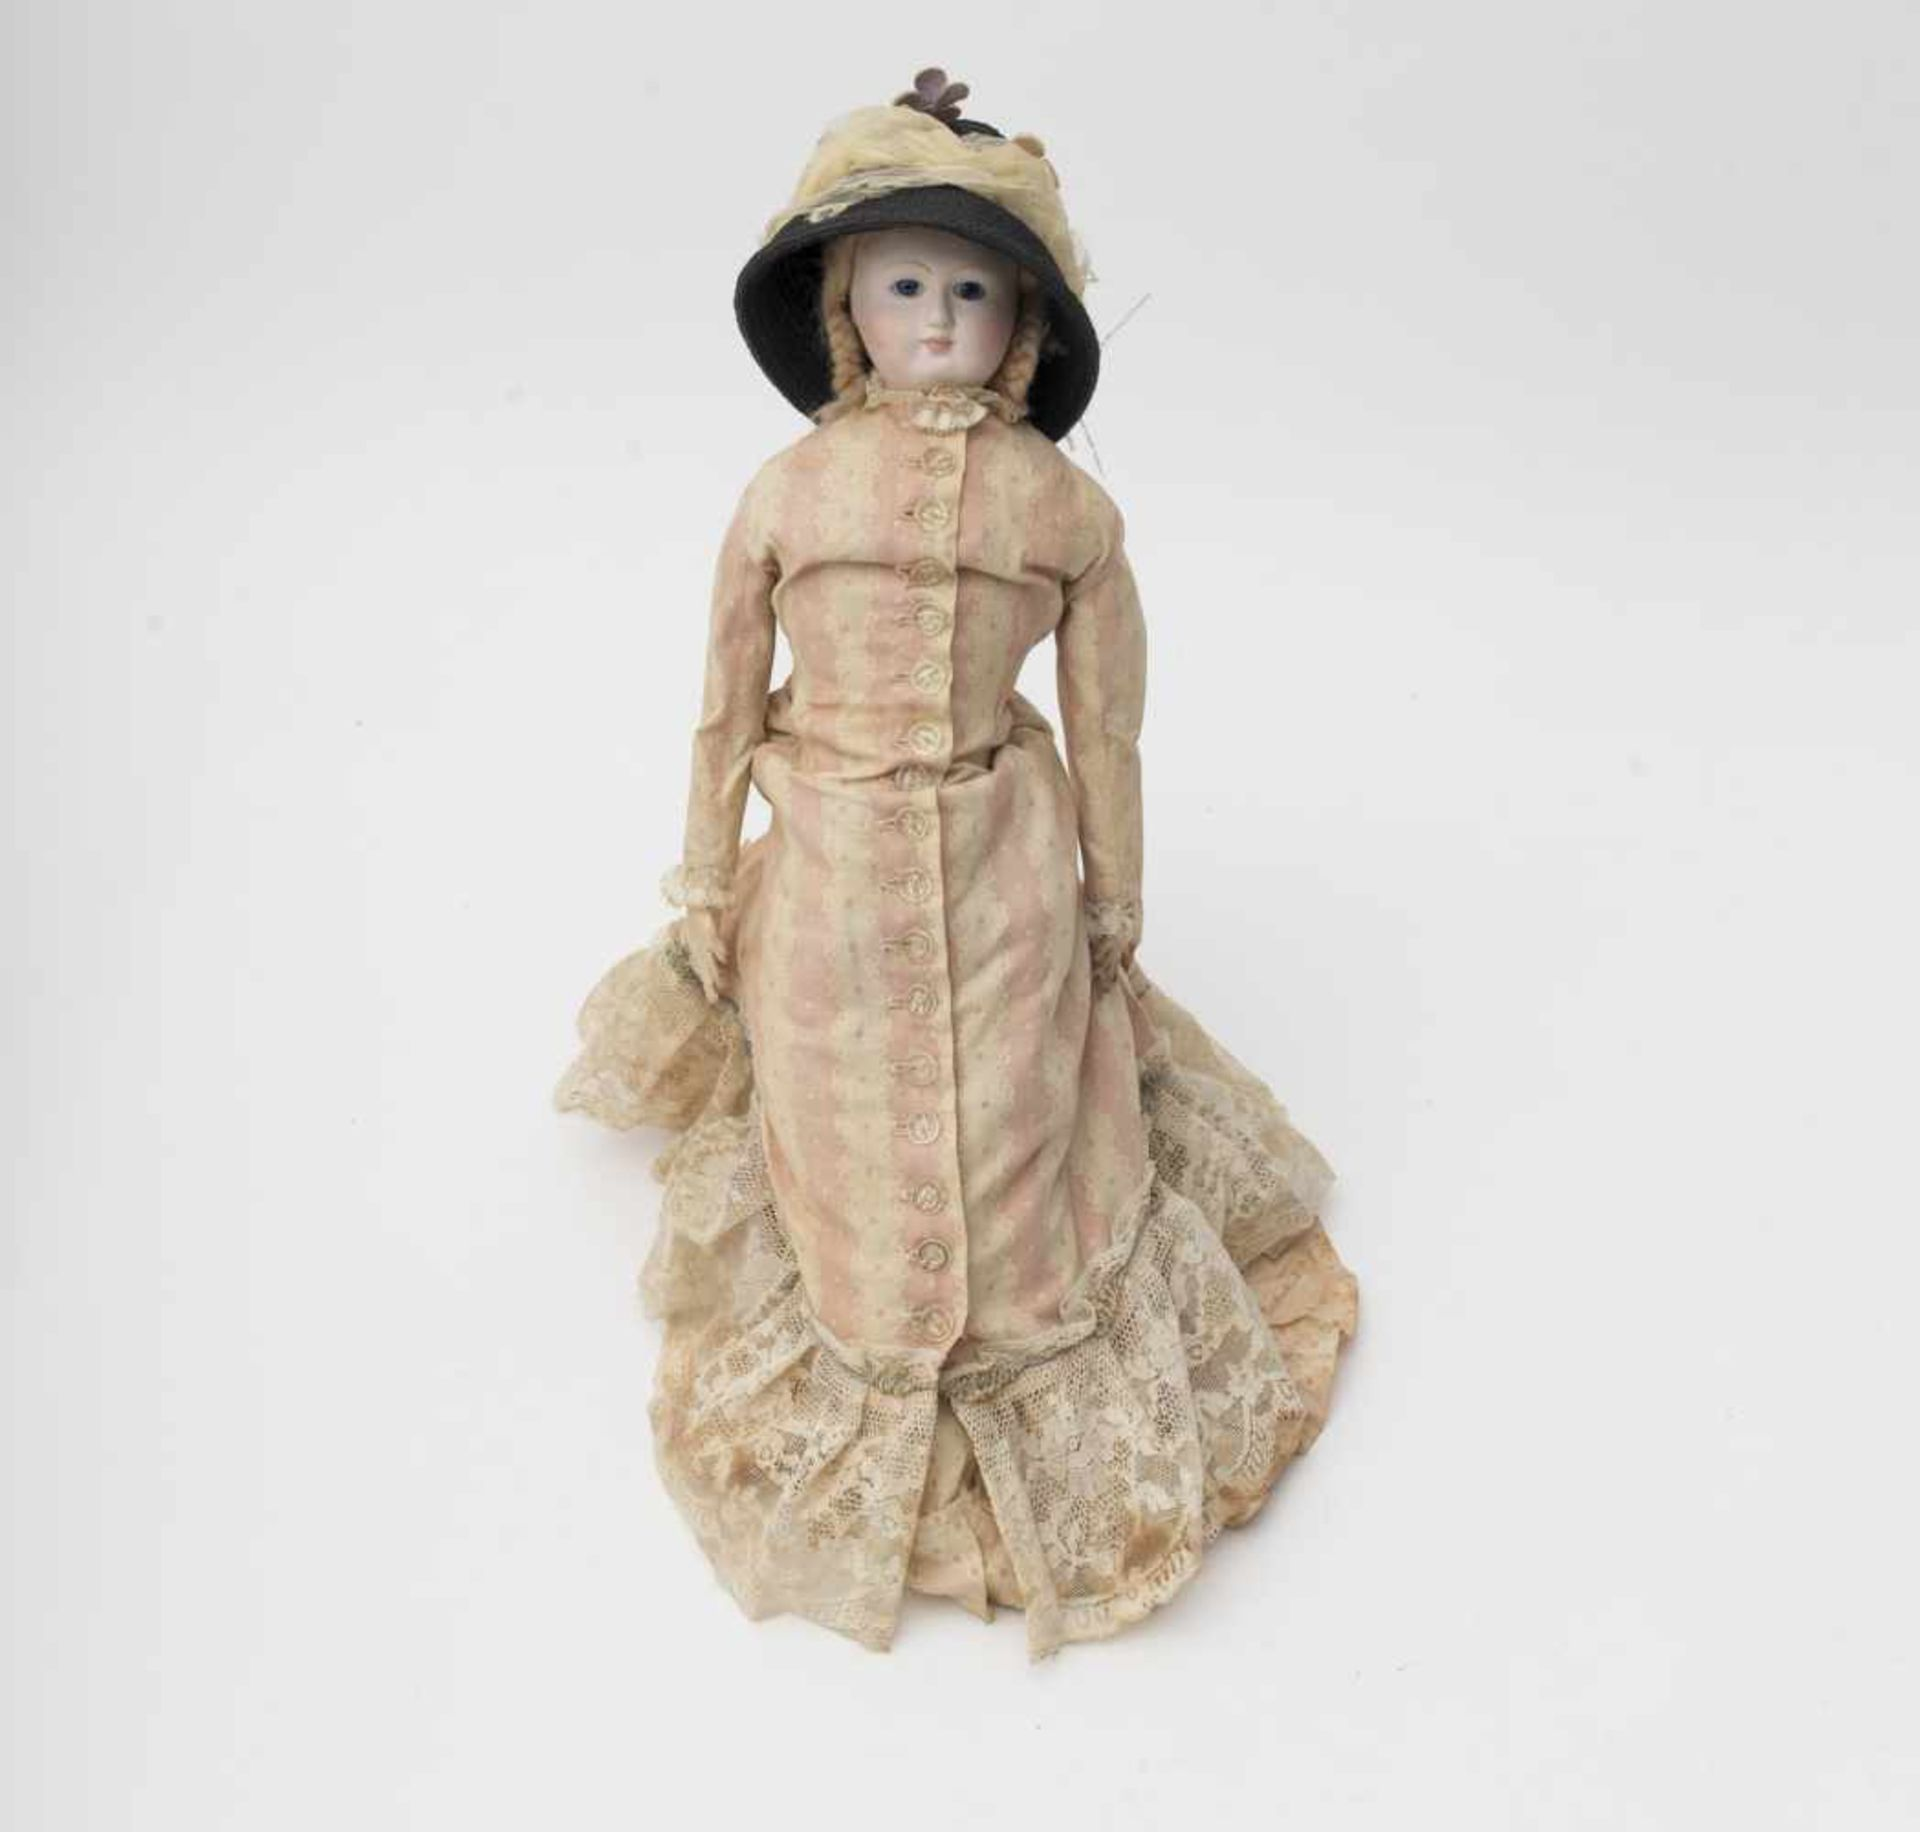 Fashion doll Parisian-type in the old style, with biscuit head and torso, kidskin body, H=45cm.